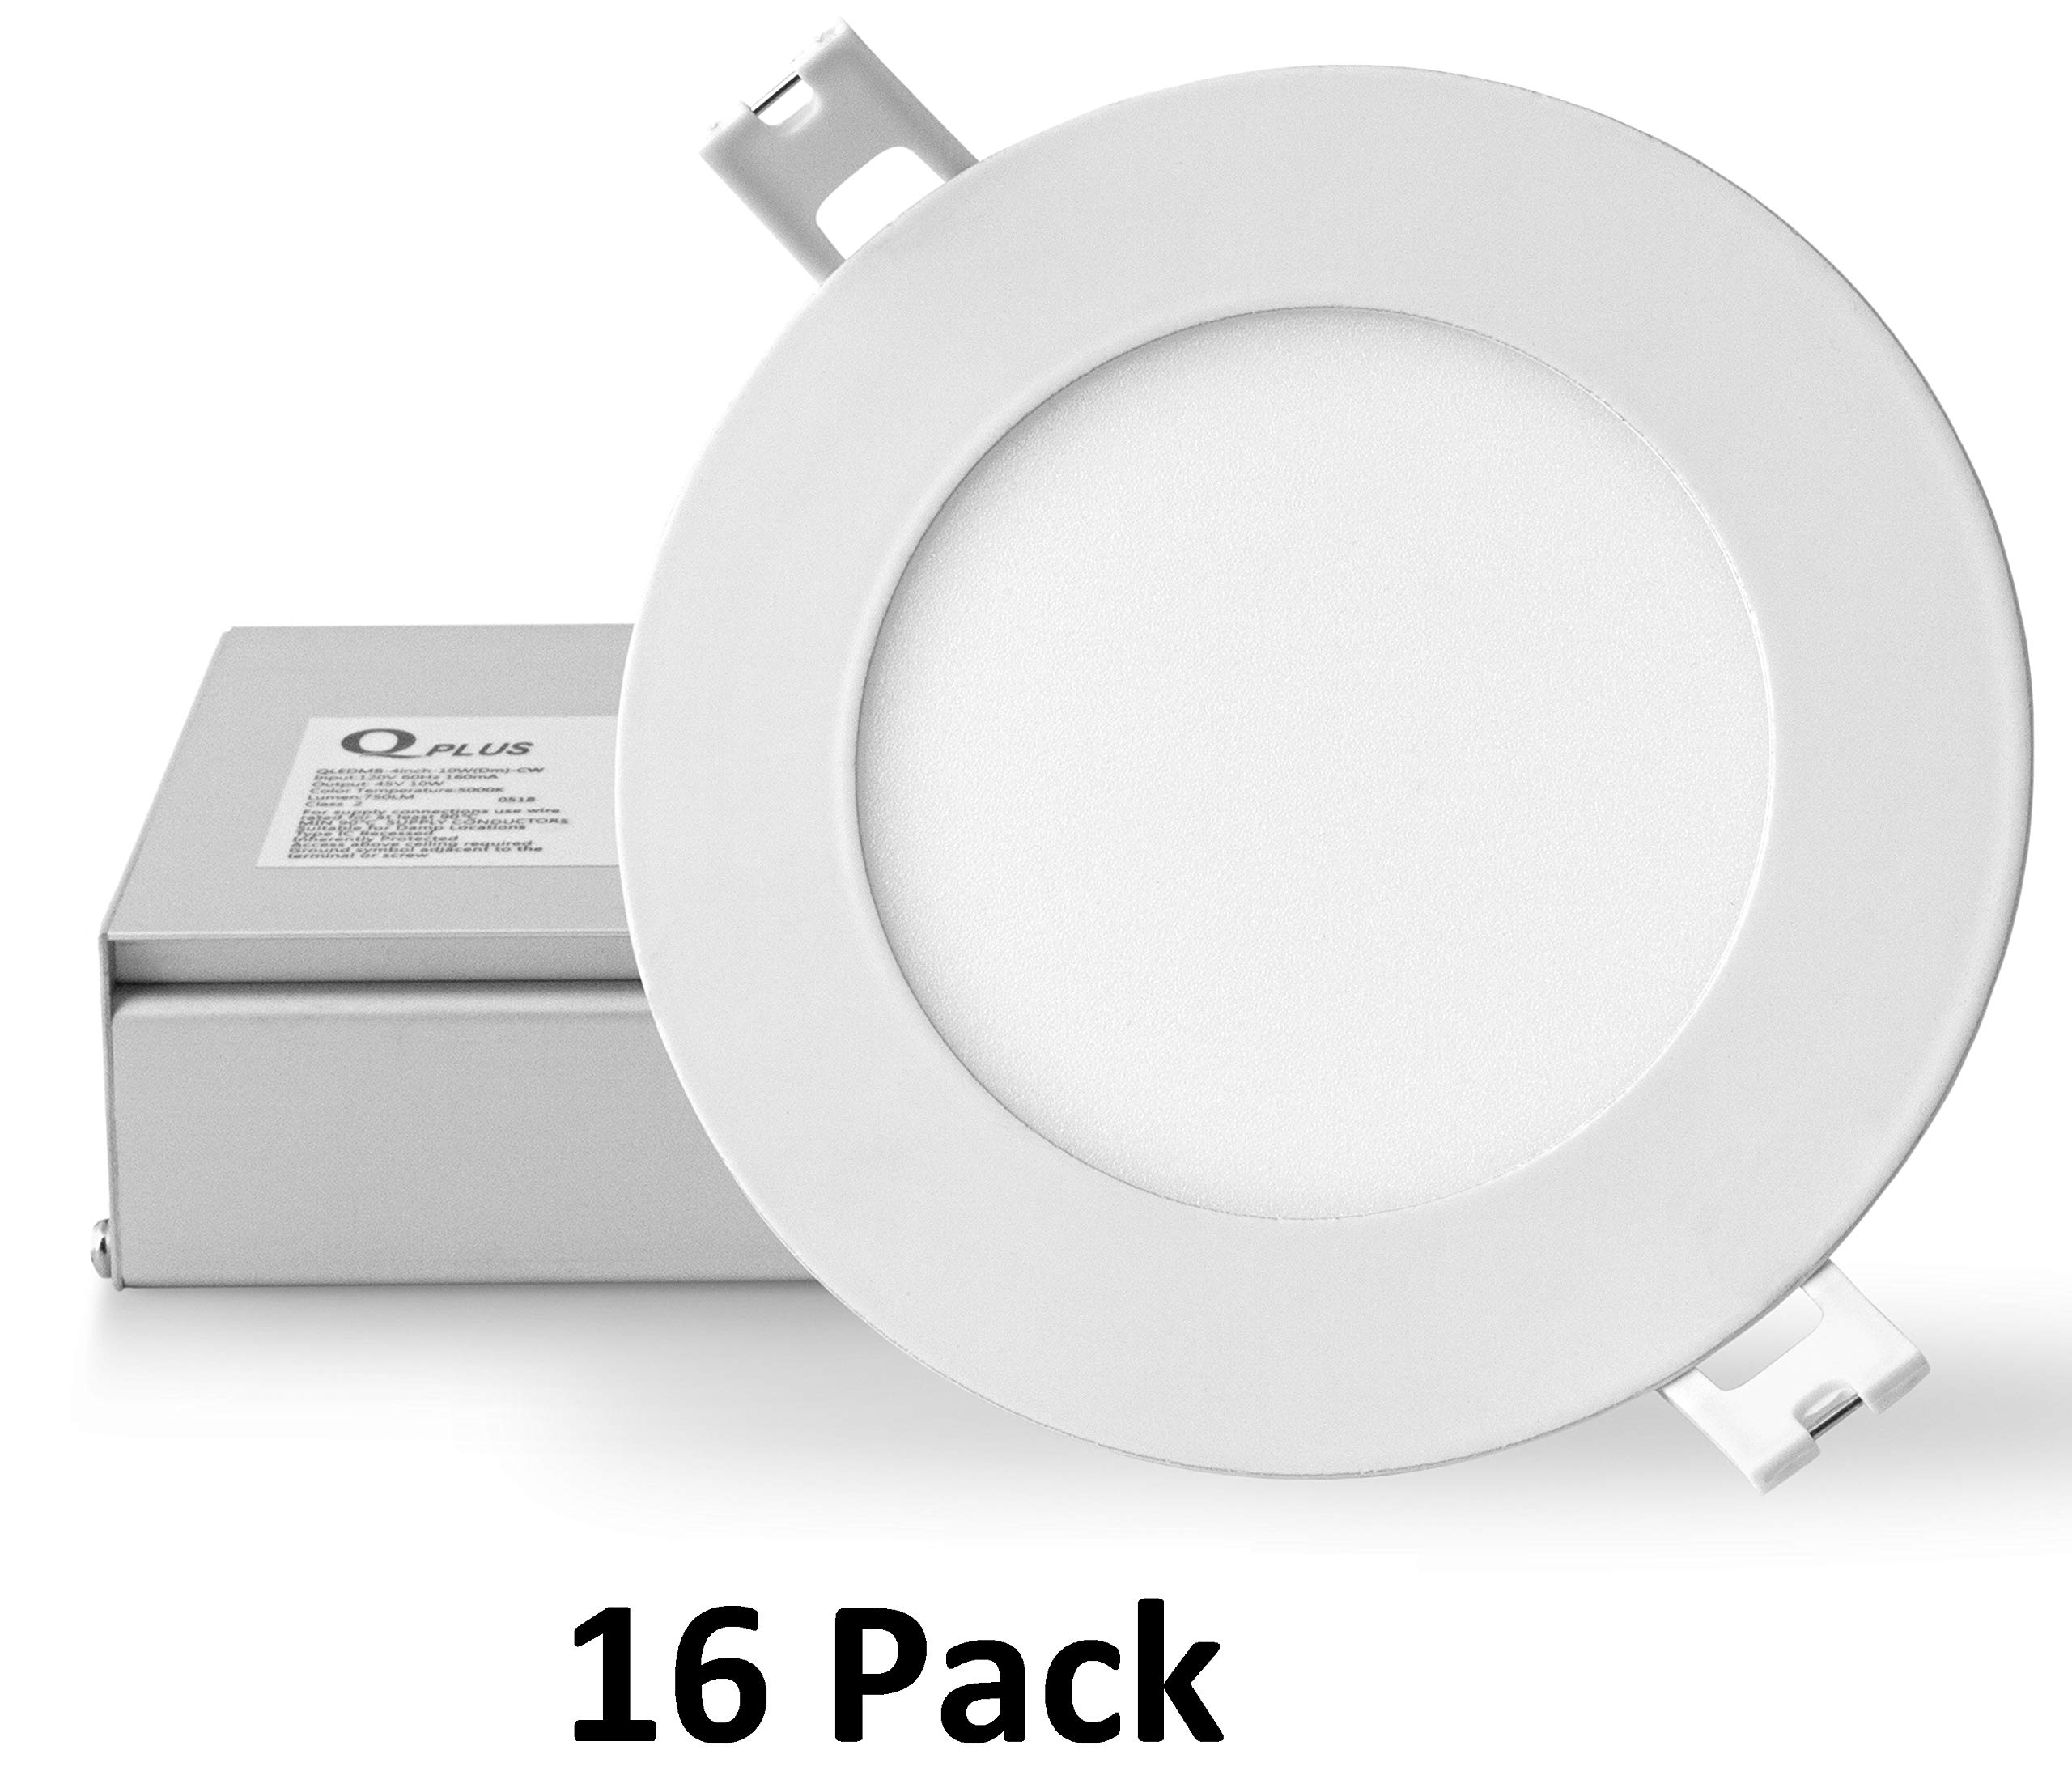 QPLUS 4 Inch 10W LED Recessed Lighting (3000K Warm White, 16 Pack), Ultra Thin Slim Wafer Low Profile Ceiling Light, Canless DownLight Kit with Junction Box, Dimmable, 750 lm, Energy Star + ETL Listed